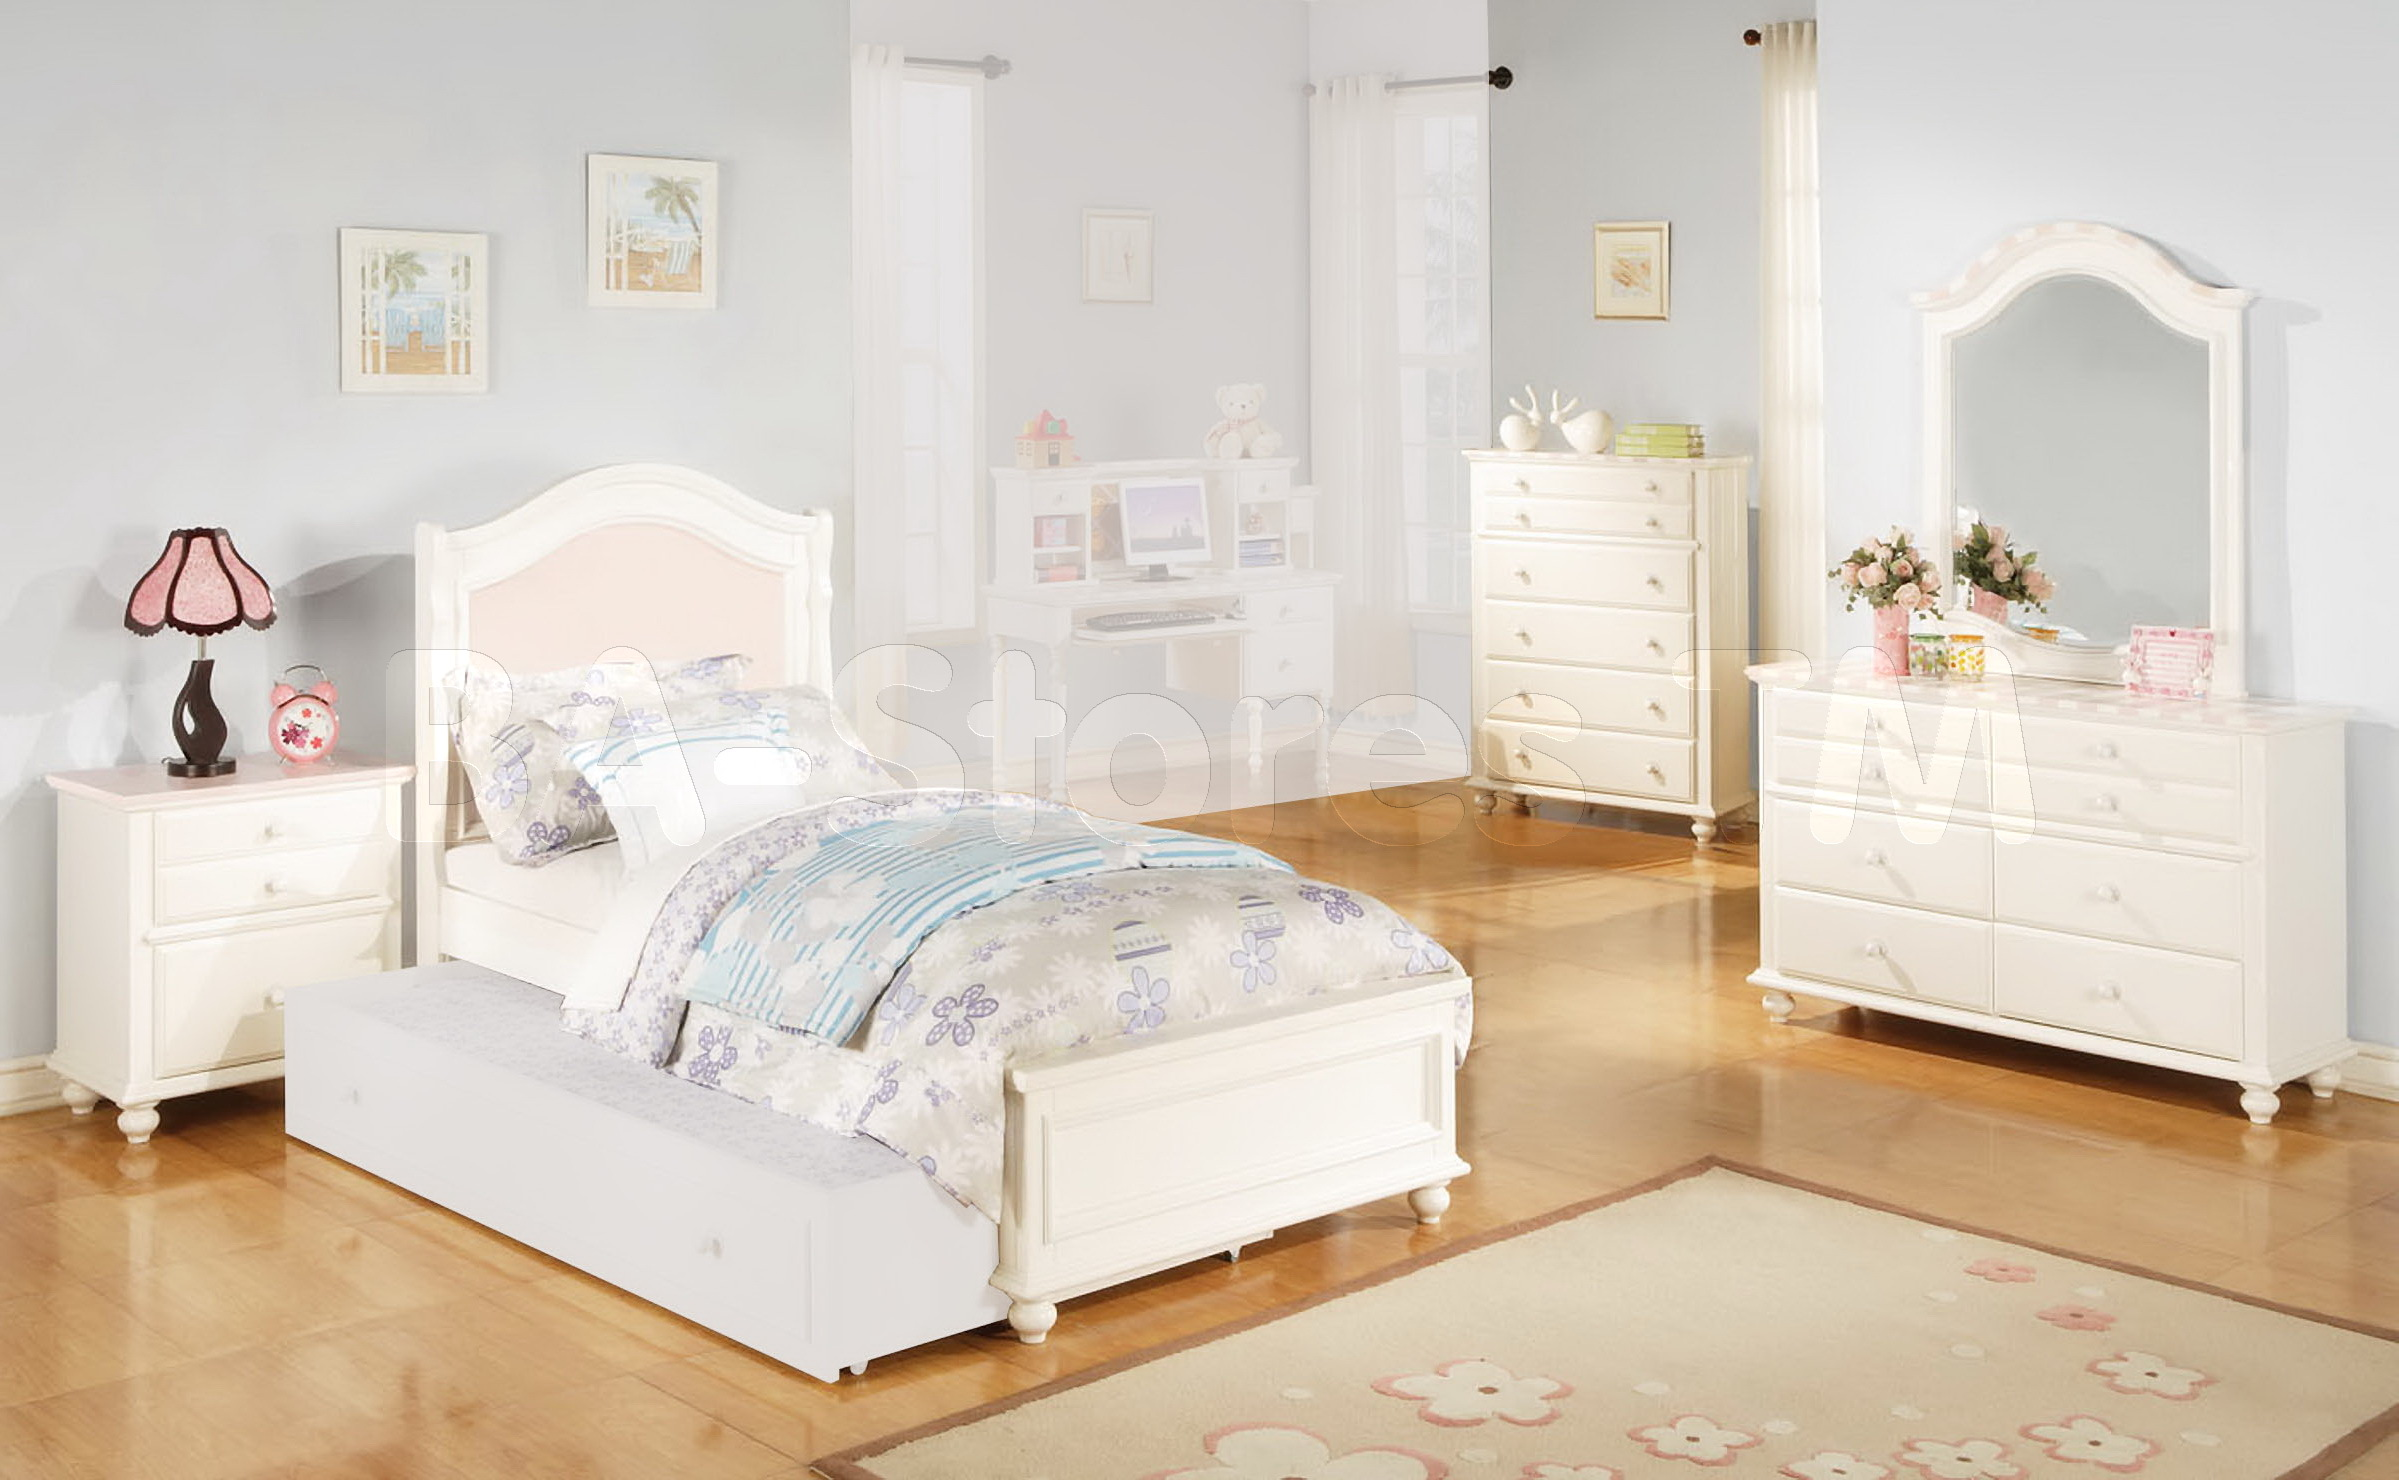 Unique Kids Bedroom Sets New Elegant White Furniture On Full Size Set For Ideas Contemporary King Rustic Queen Modern Tree Weird Vintage Apppie Org